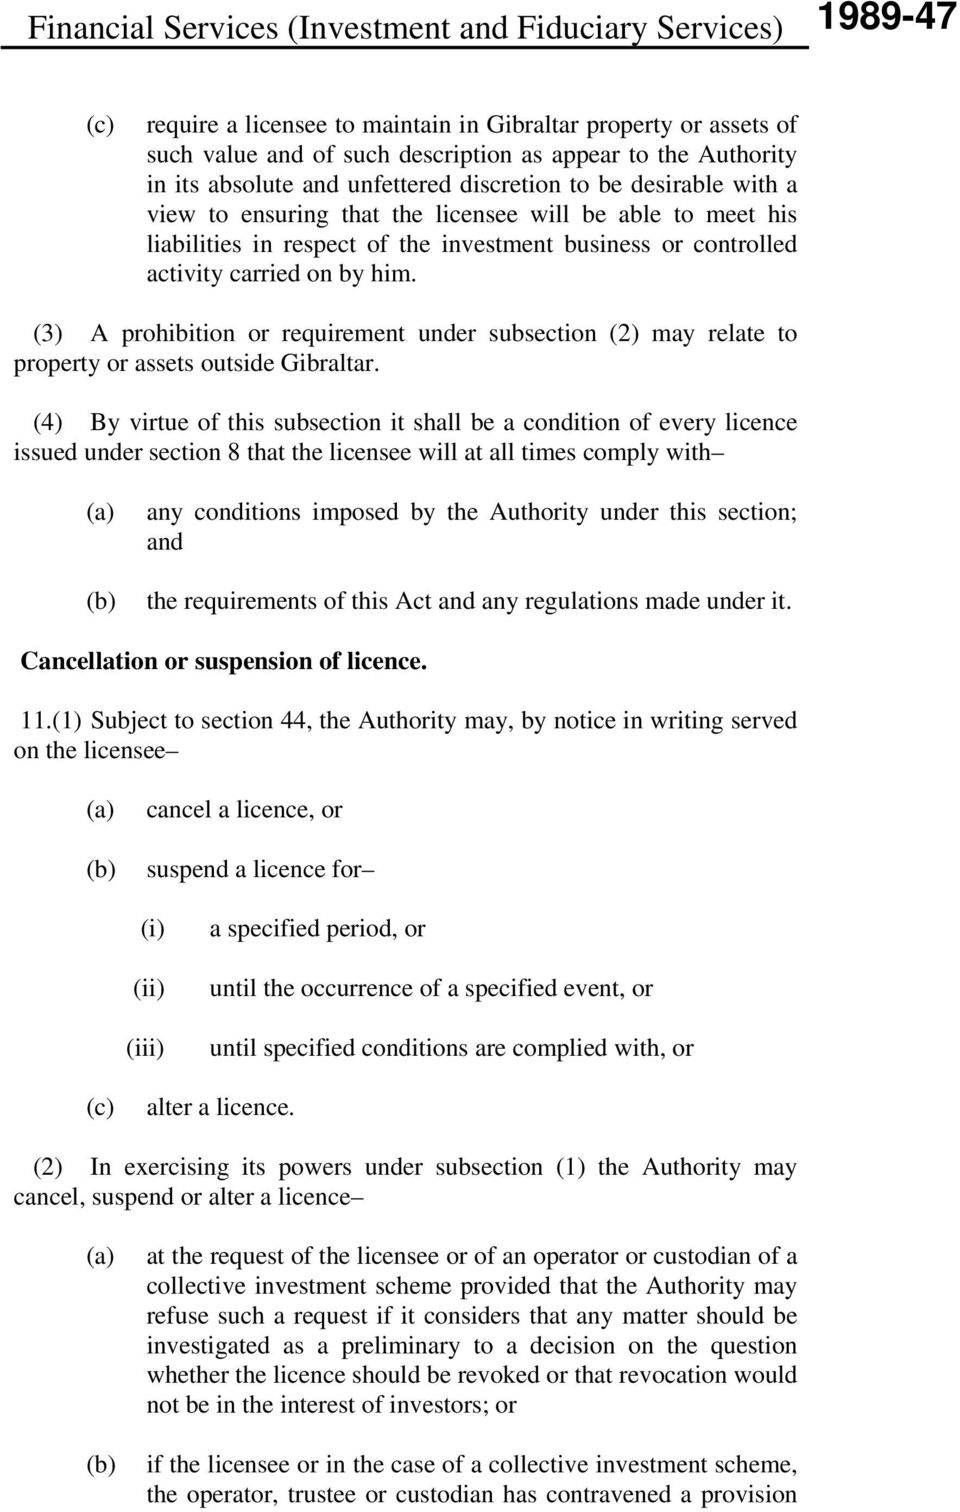 (3) A prohibition or requirement under subsection (2) may relate to property or assets outside Gibraltar.